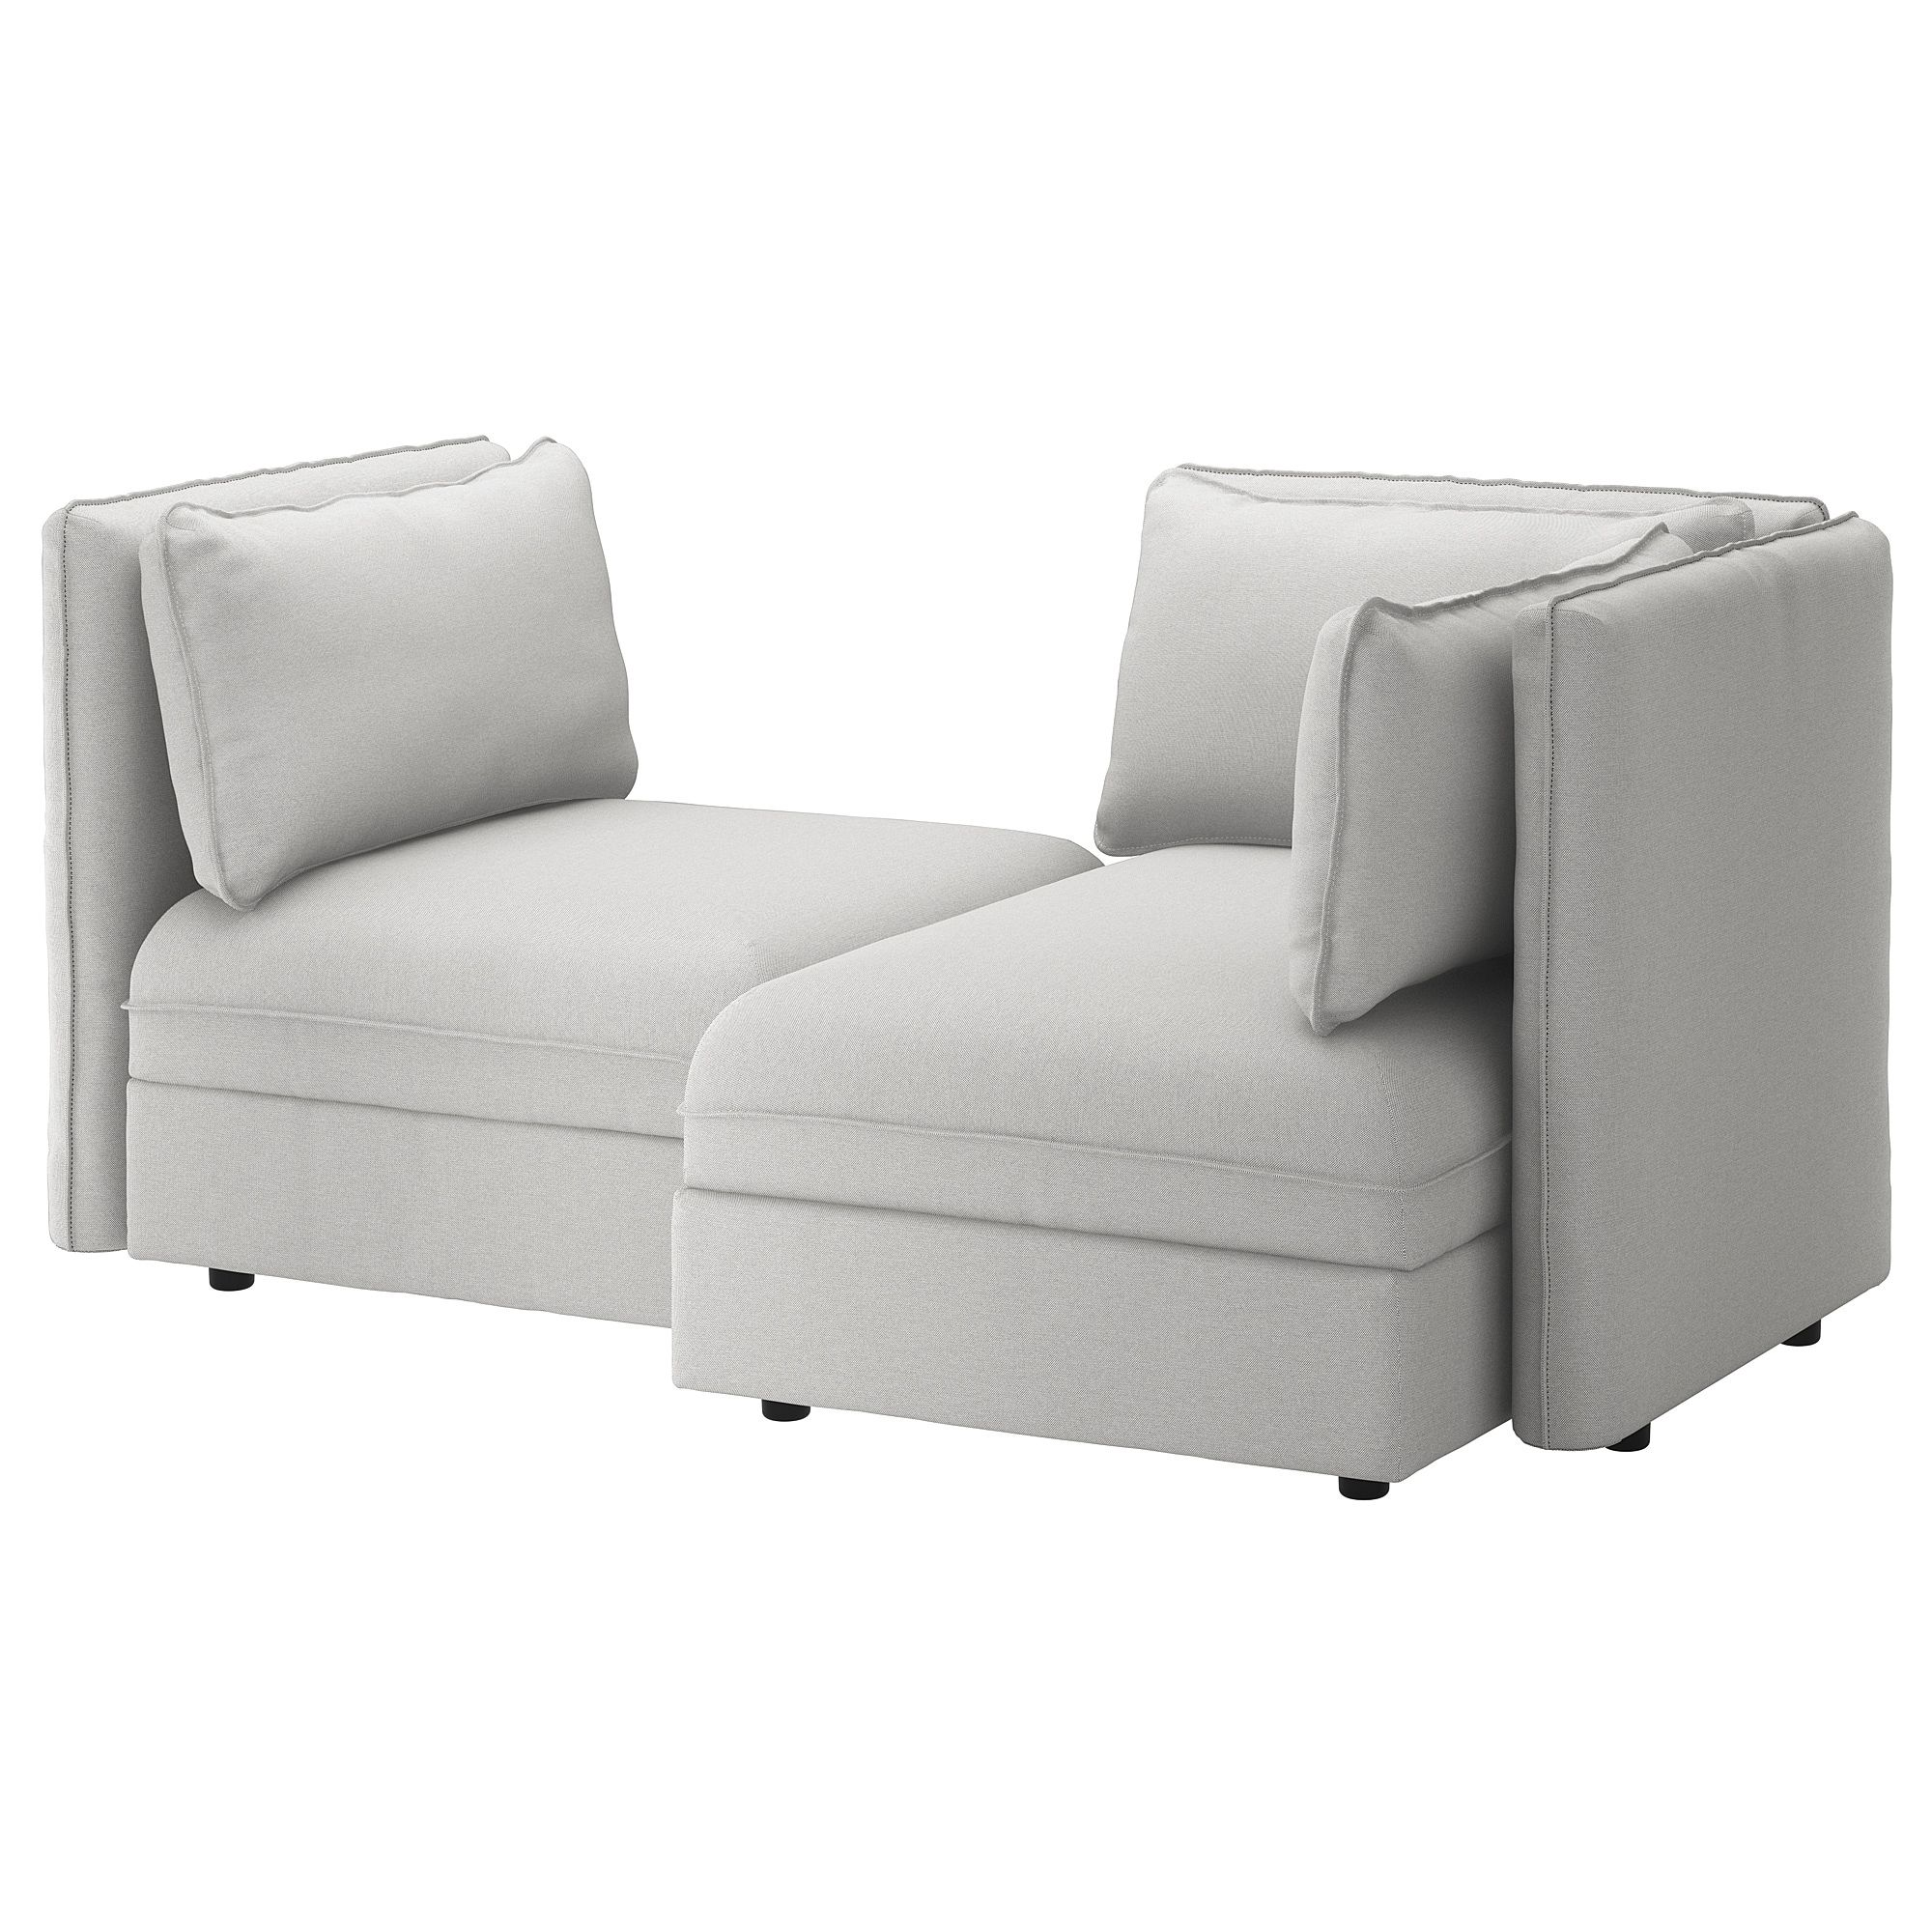 Loveseat Ikea Vallentuna Modular Loveseat With Storage Orrsta Light Gray